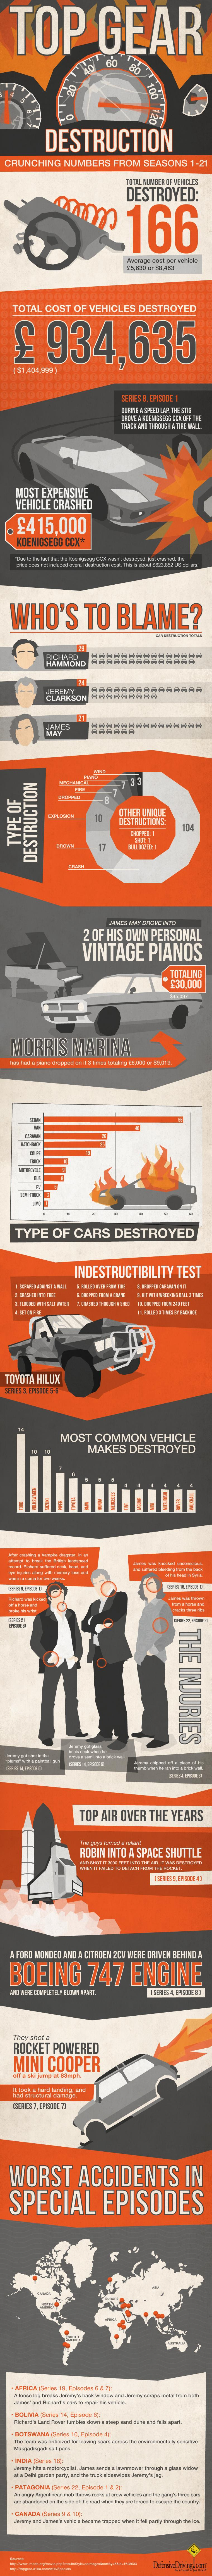 the best top gear infographic in the world photo gallery autoevolution the best top gear infographic in the